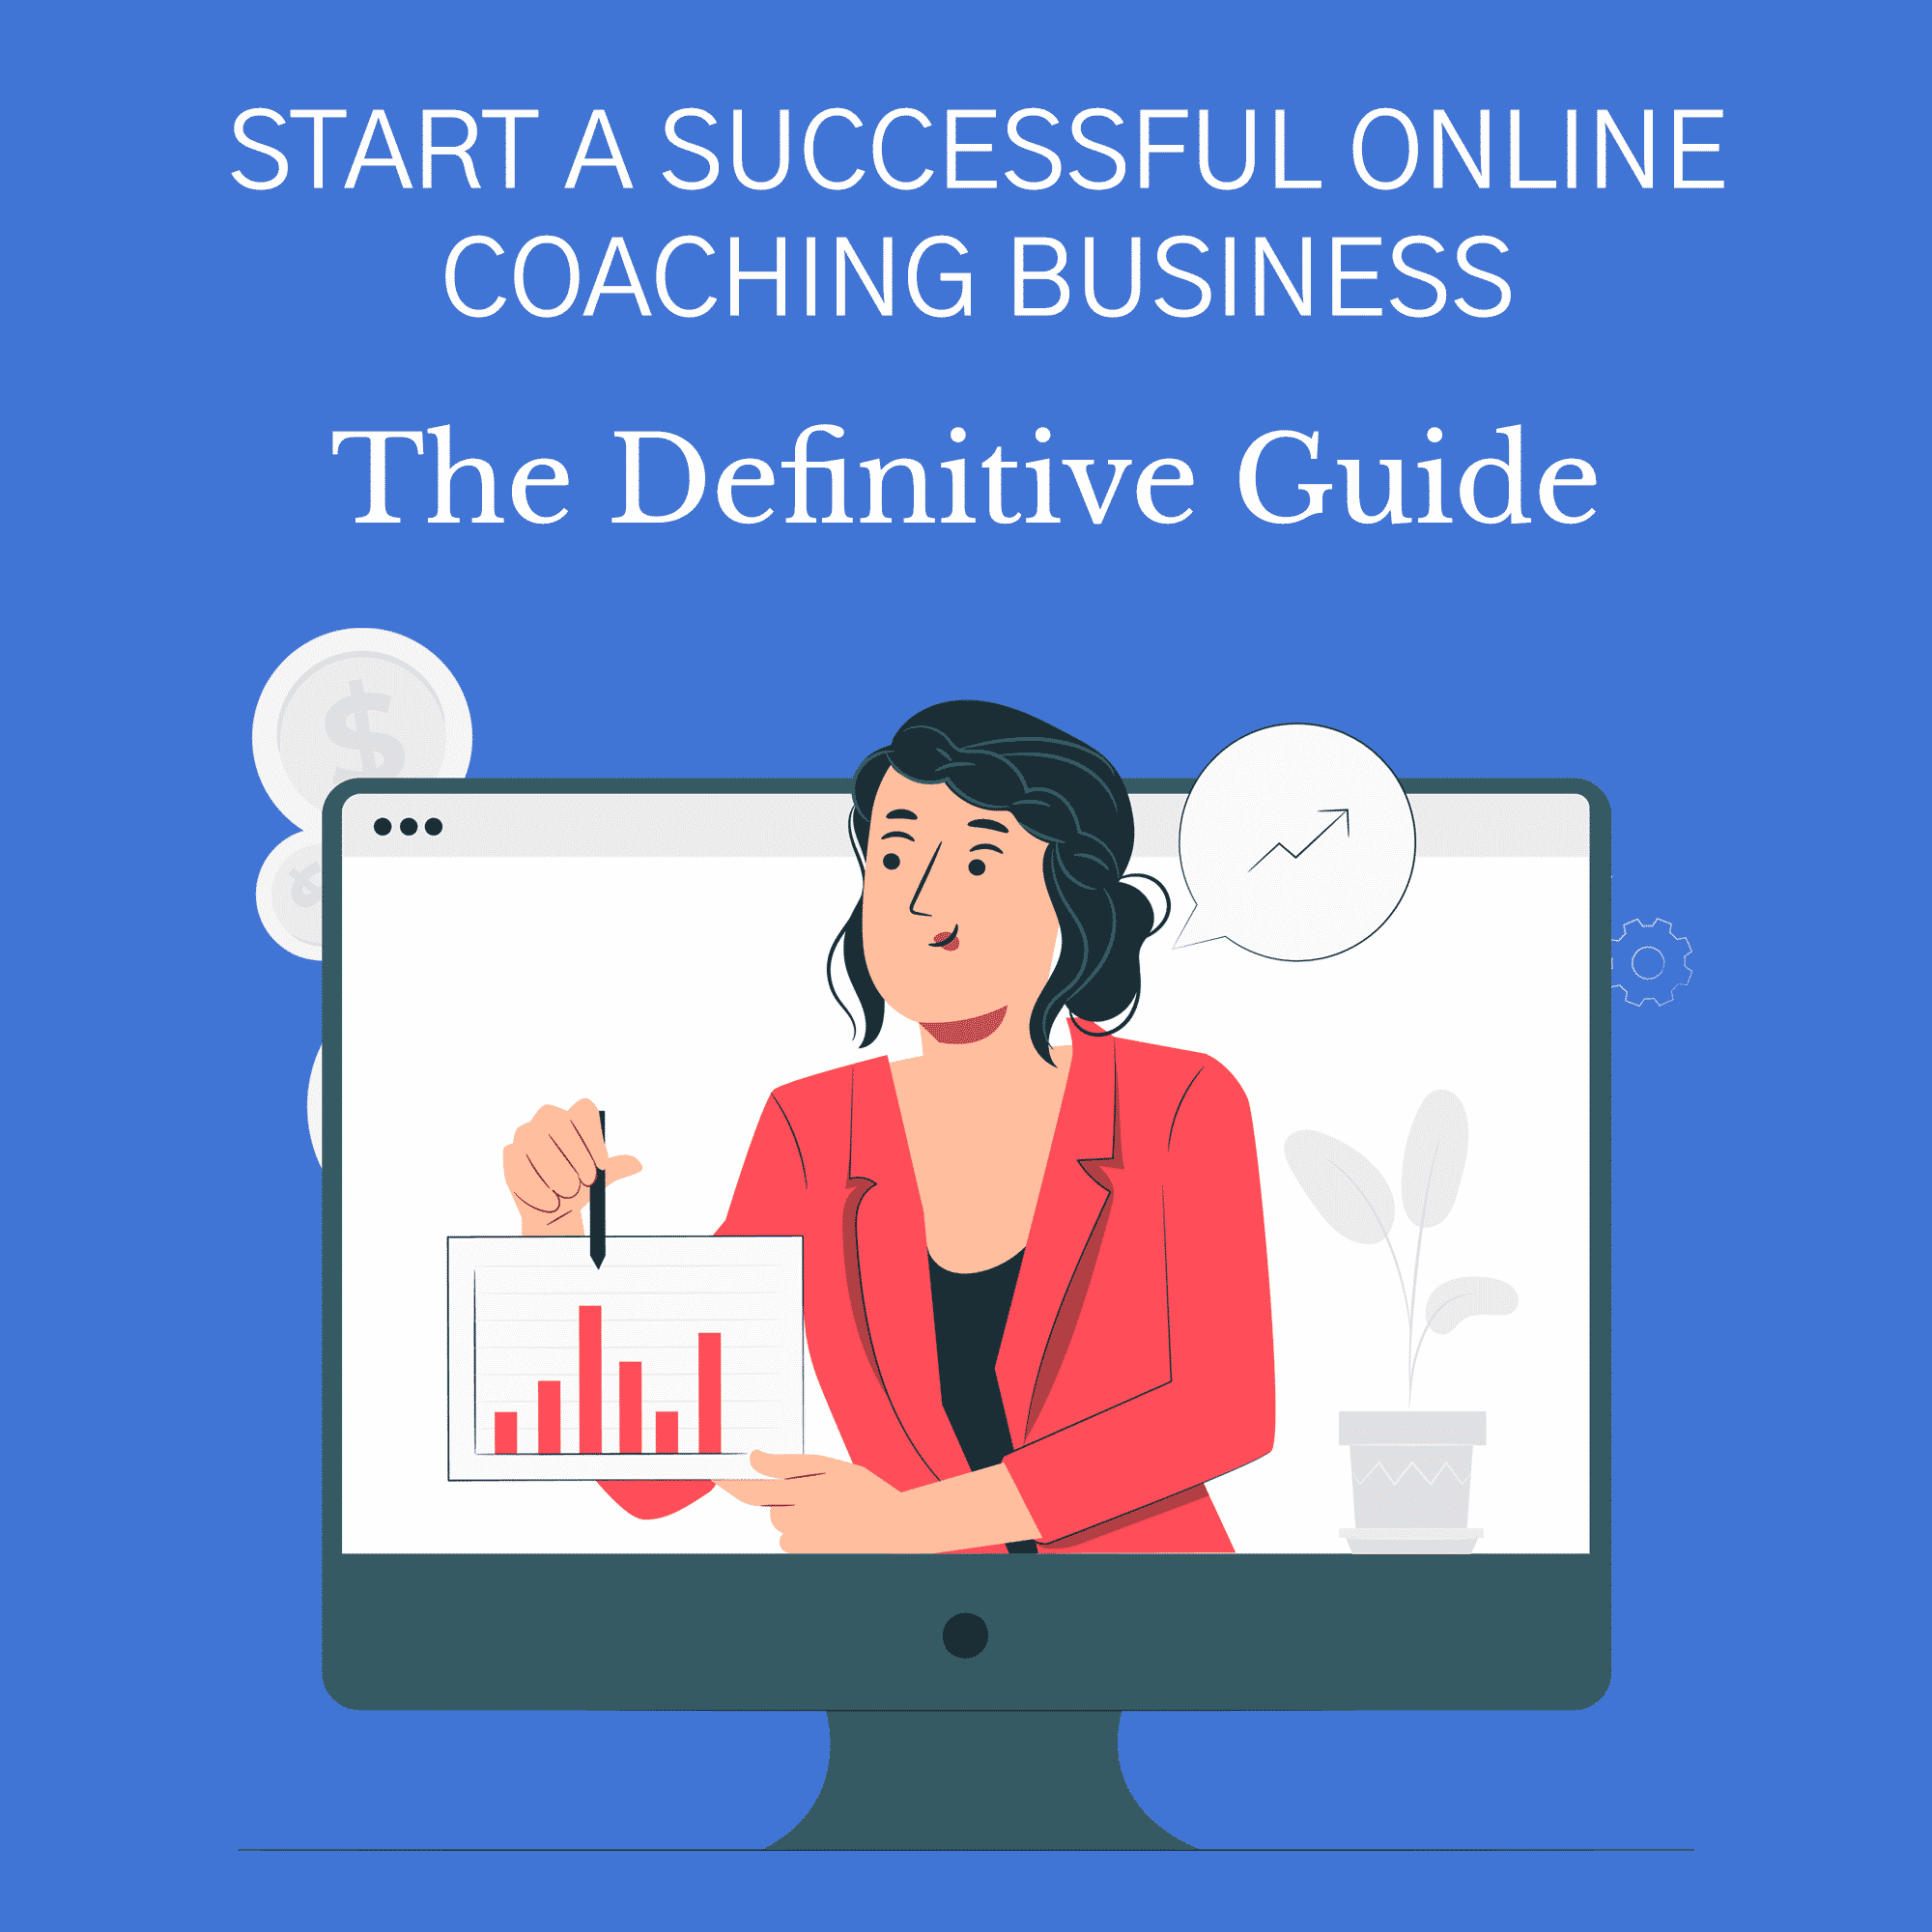 Start A Successful Online Coaching Business: The Definitive Guide [2021-22]